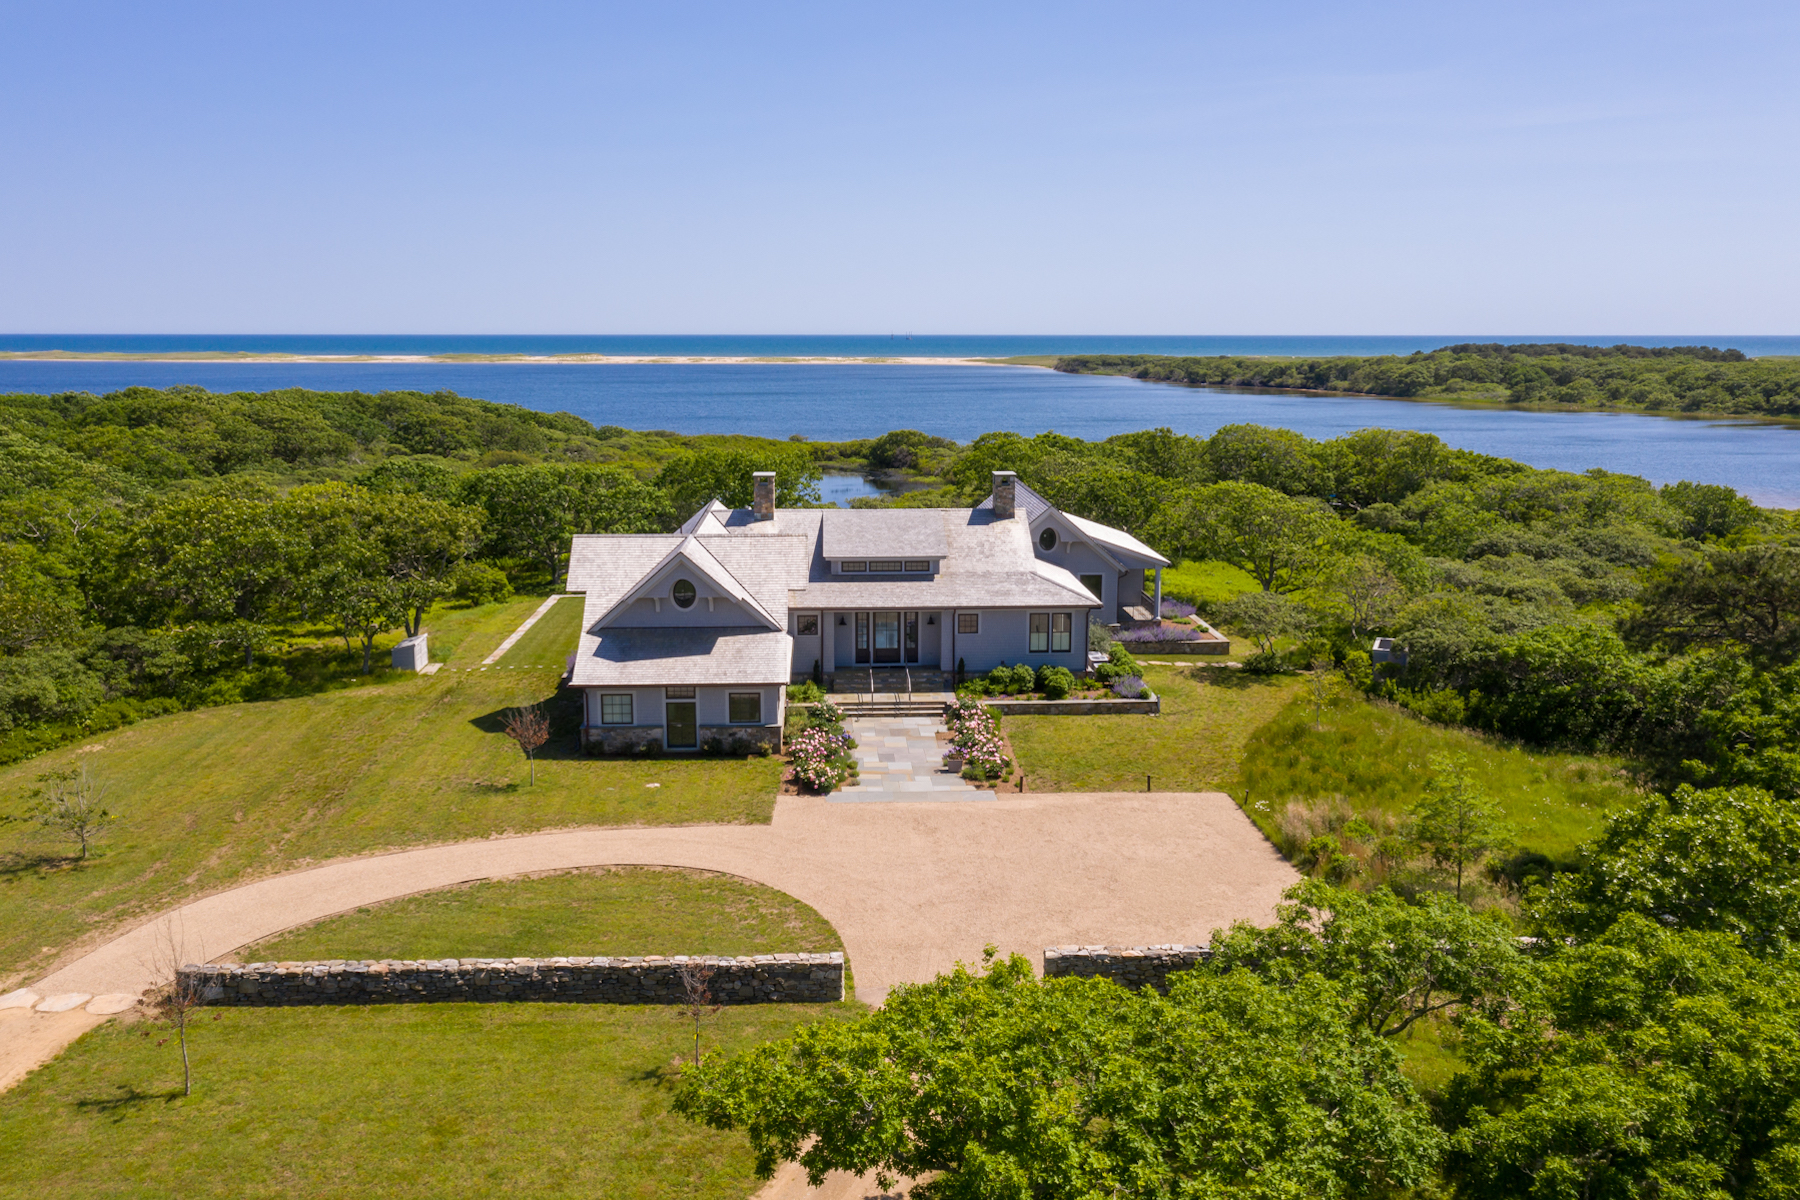 Single Family Homes for Active at Waterfront Estate on Edgartown Great Pond 10 Jacobs Neck Road Edgartown, Massachusetts 02539 United States